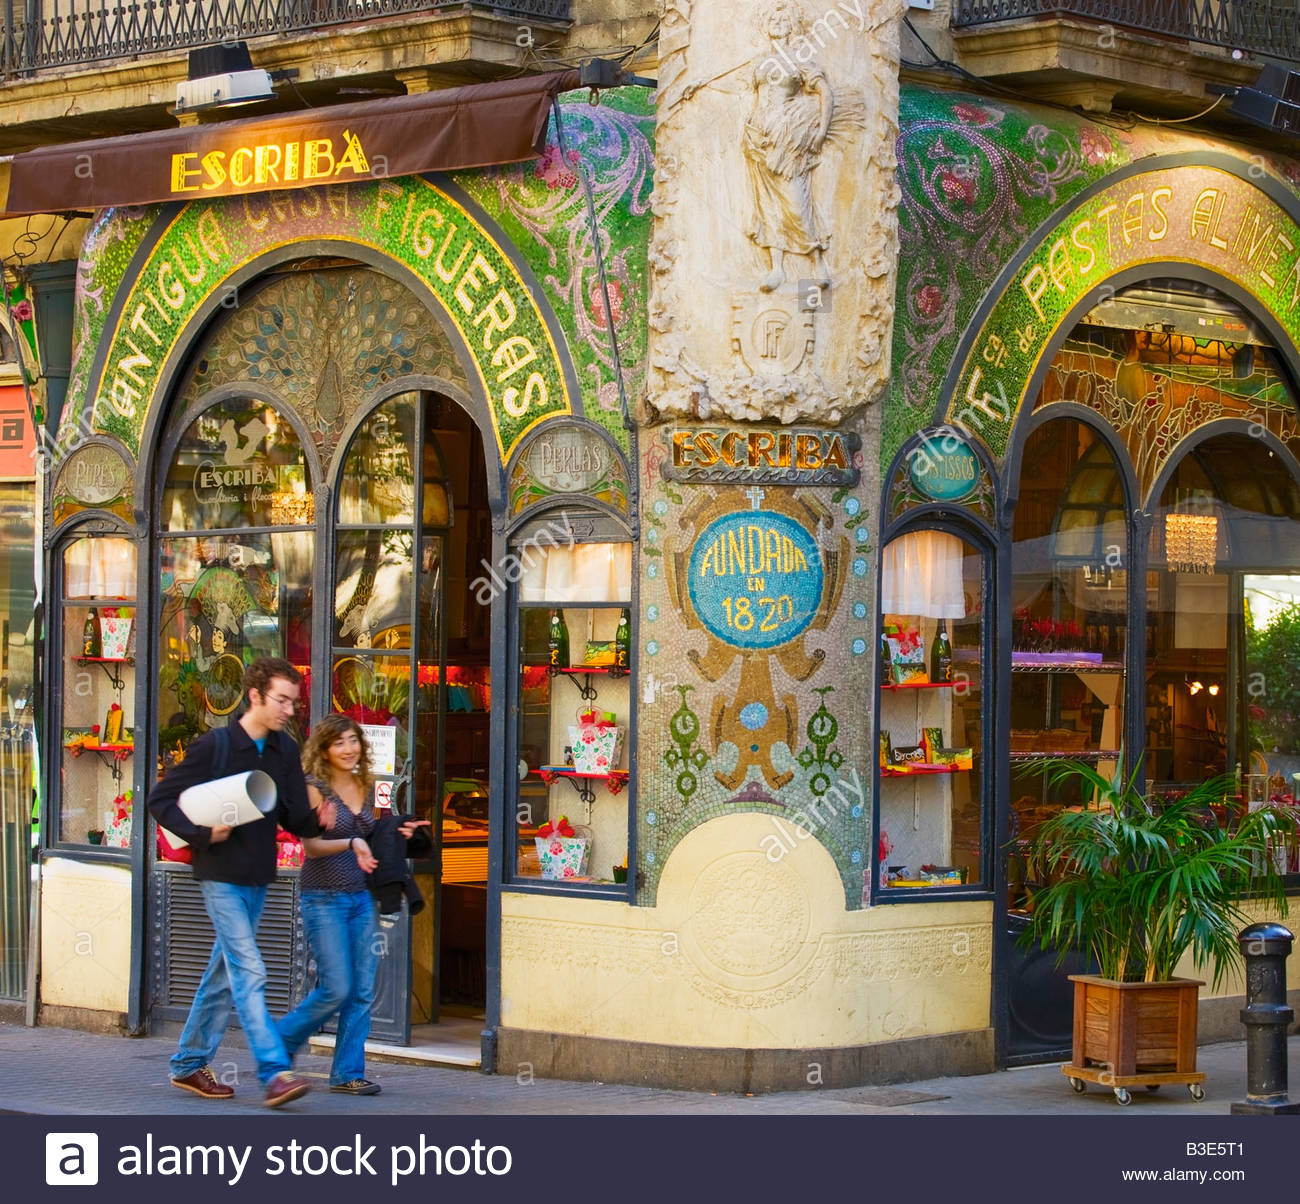 Escribà s delicatessen and pastry shop Las Ramblas Barcelona Catalonia Spain - Stock Image